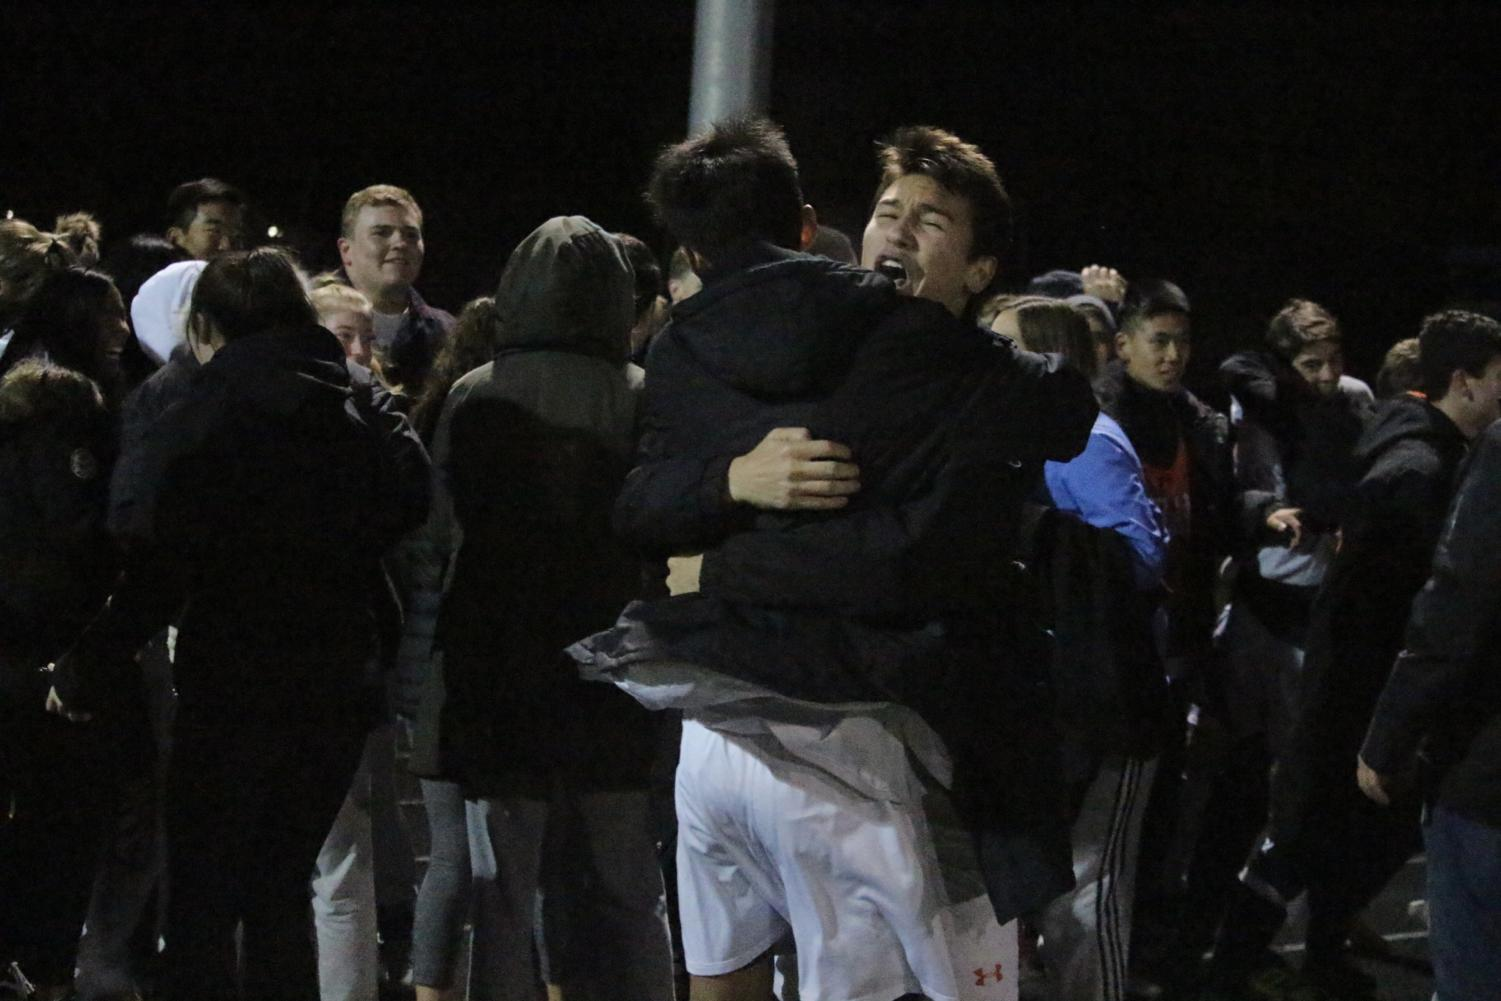 Tyska+and+Wong+hug+after+the+last+goaal+is+scored+in+the+shootout.+